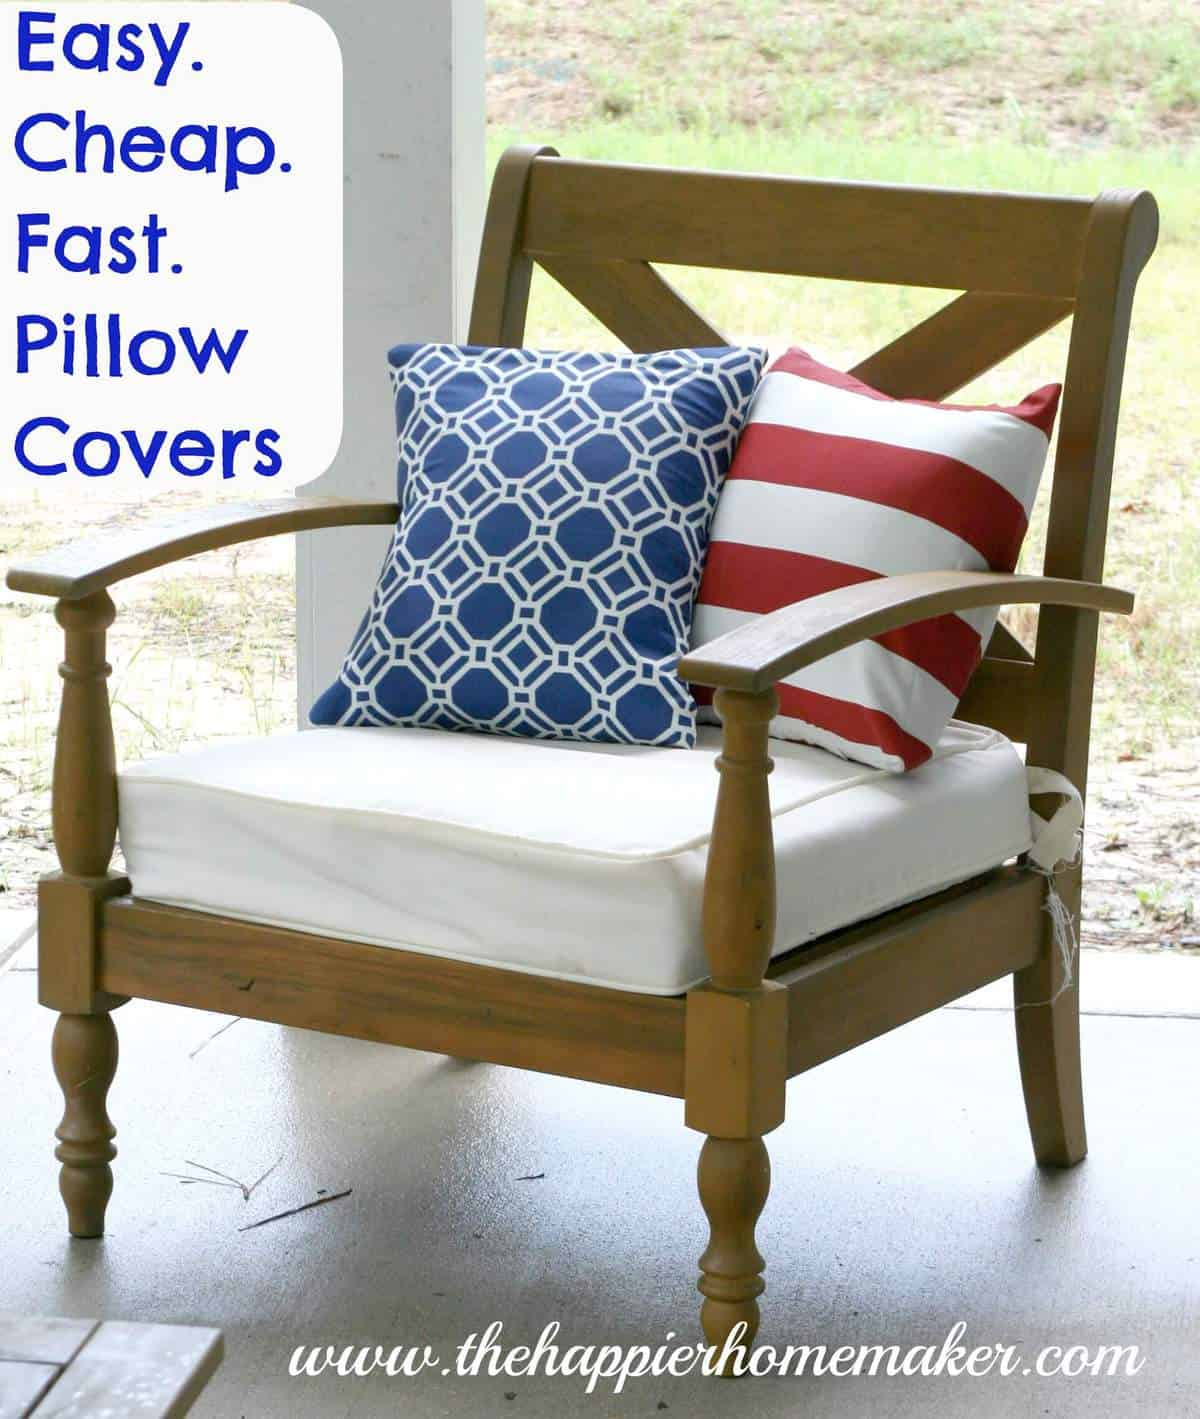 Easy Cheap Fast DIY Pillow Covers  The Happier Homemaker